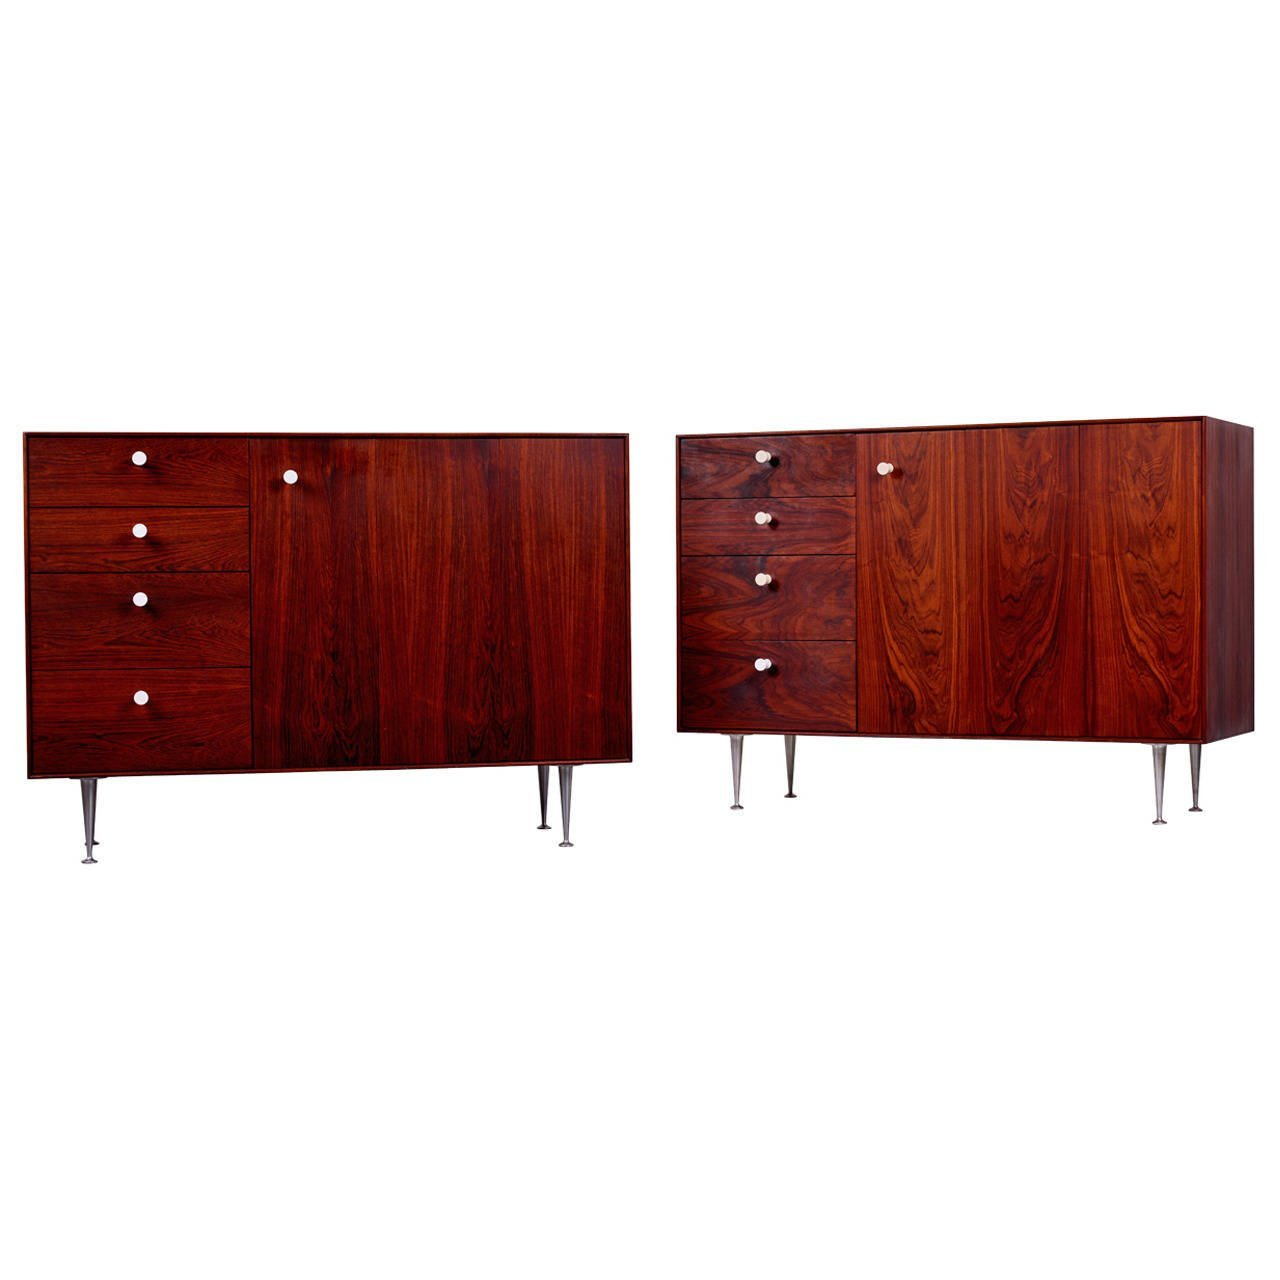 George Nelson & Associates Thin Edge Cabinets in Rosewood, 1952 - The Exchange Int